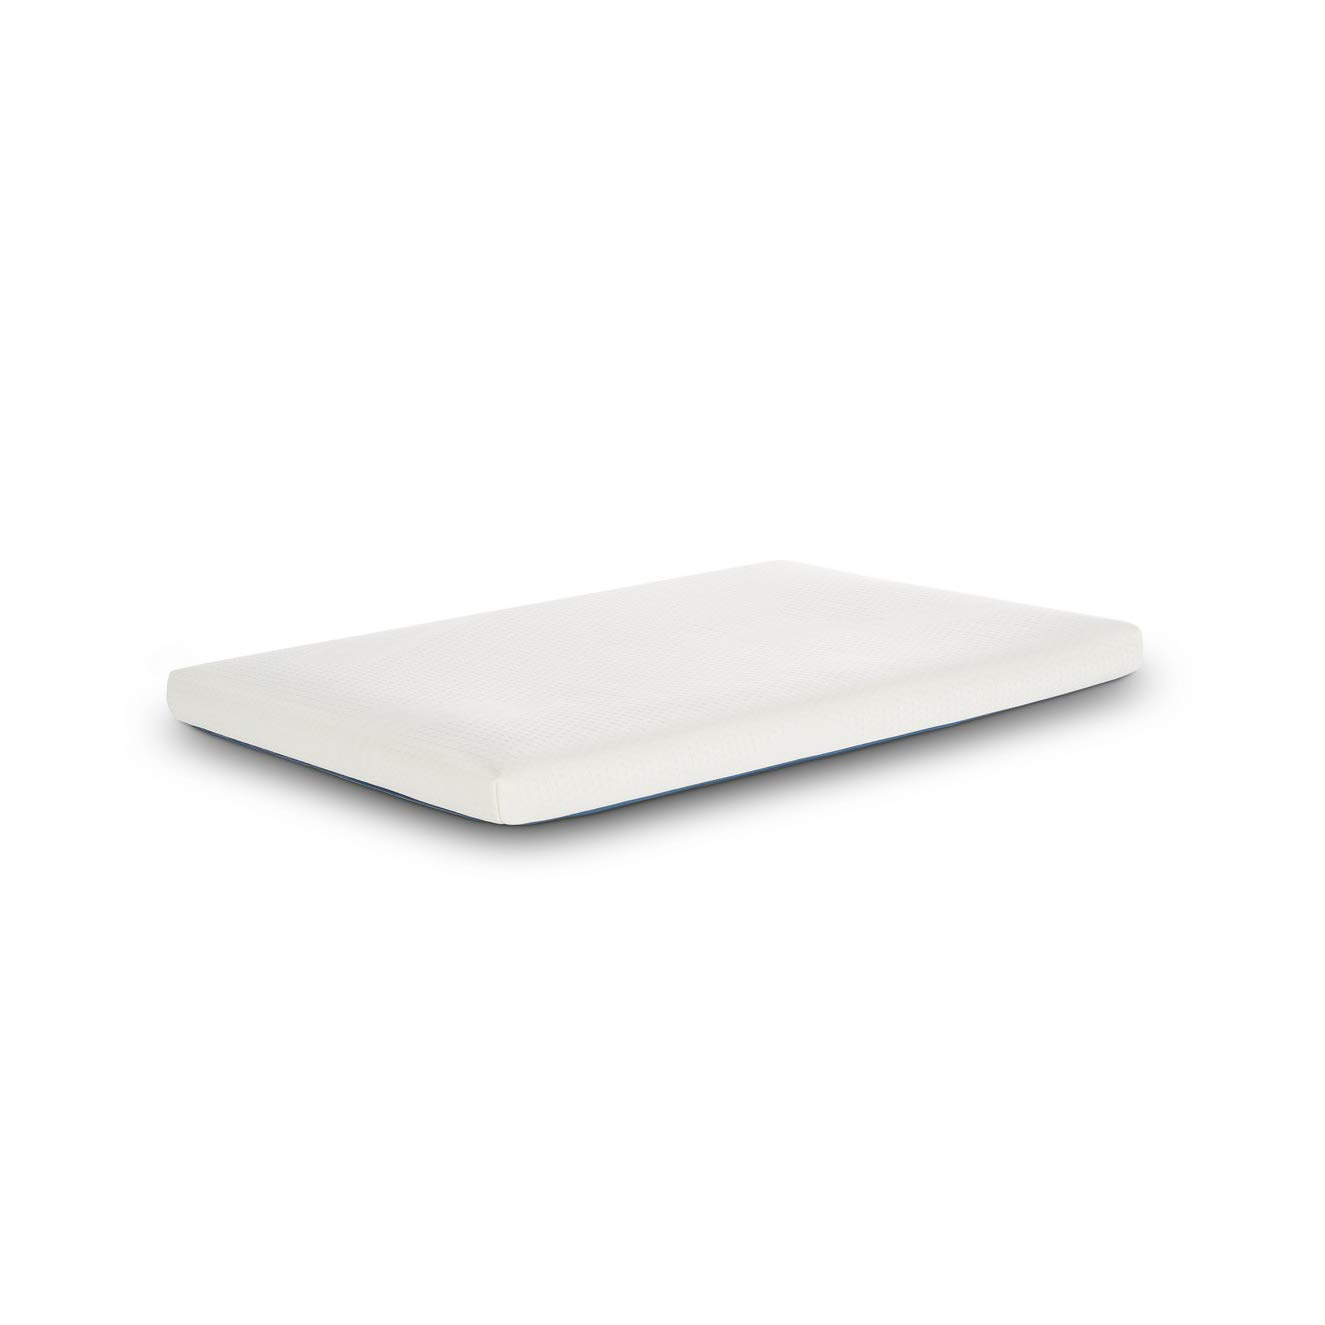 Ecus Care MCAR075052 - Colchón de minicuna anti plagiocefalia, 75 x 52, color blanco: Amazon.es: Bebé